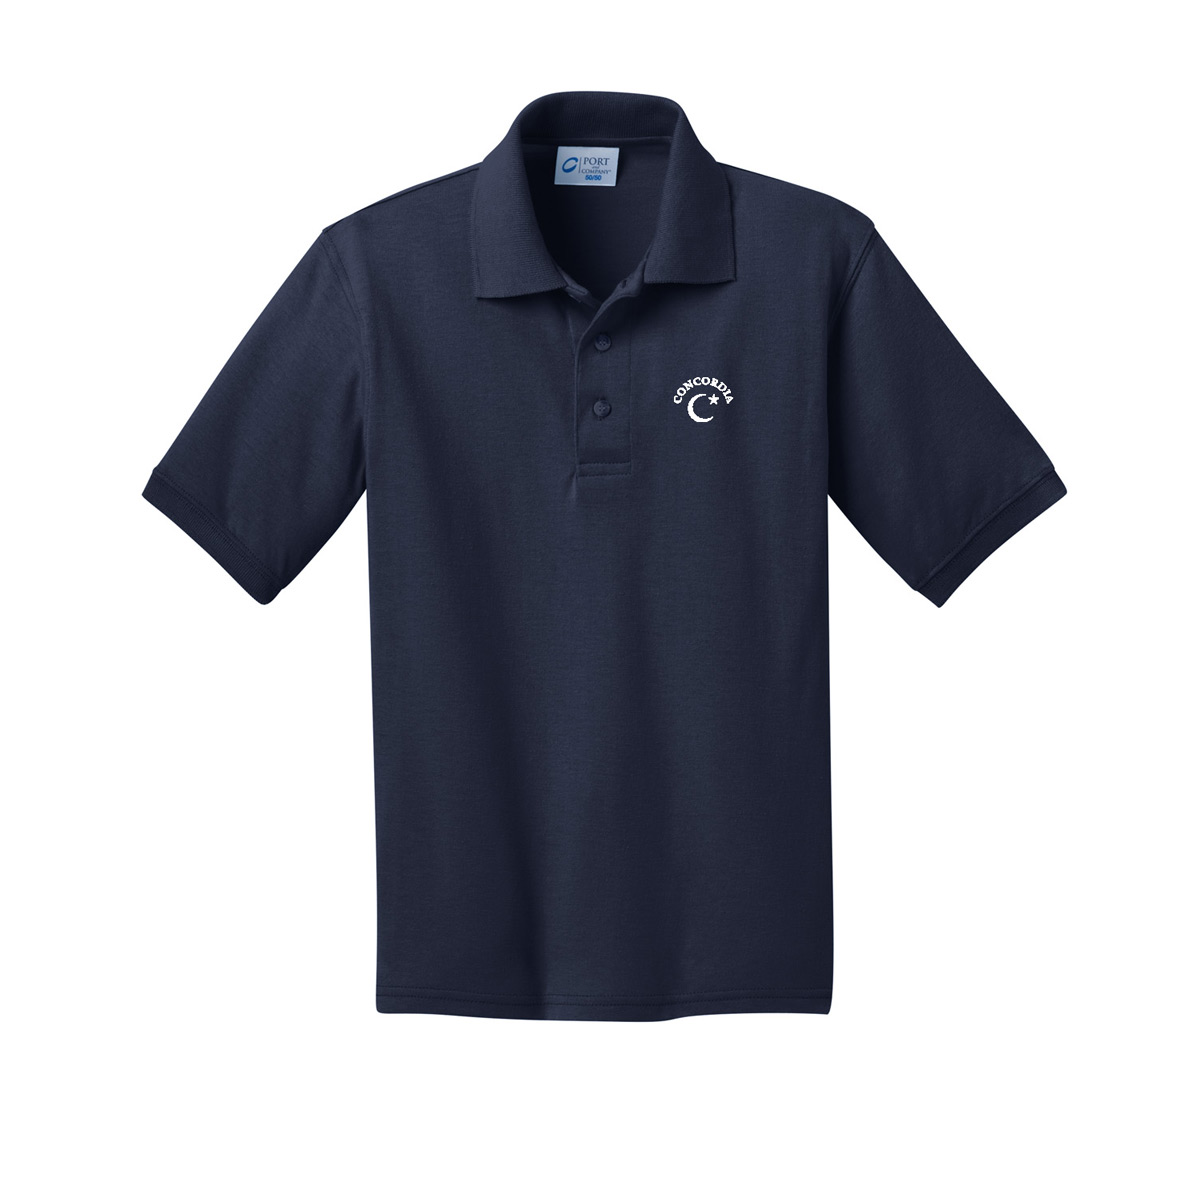 CONCORDIA - K'S COTTON POLO